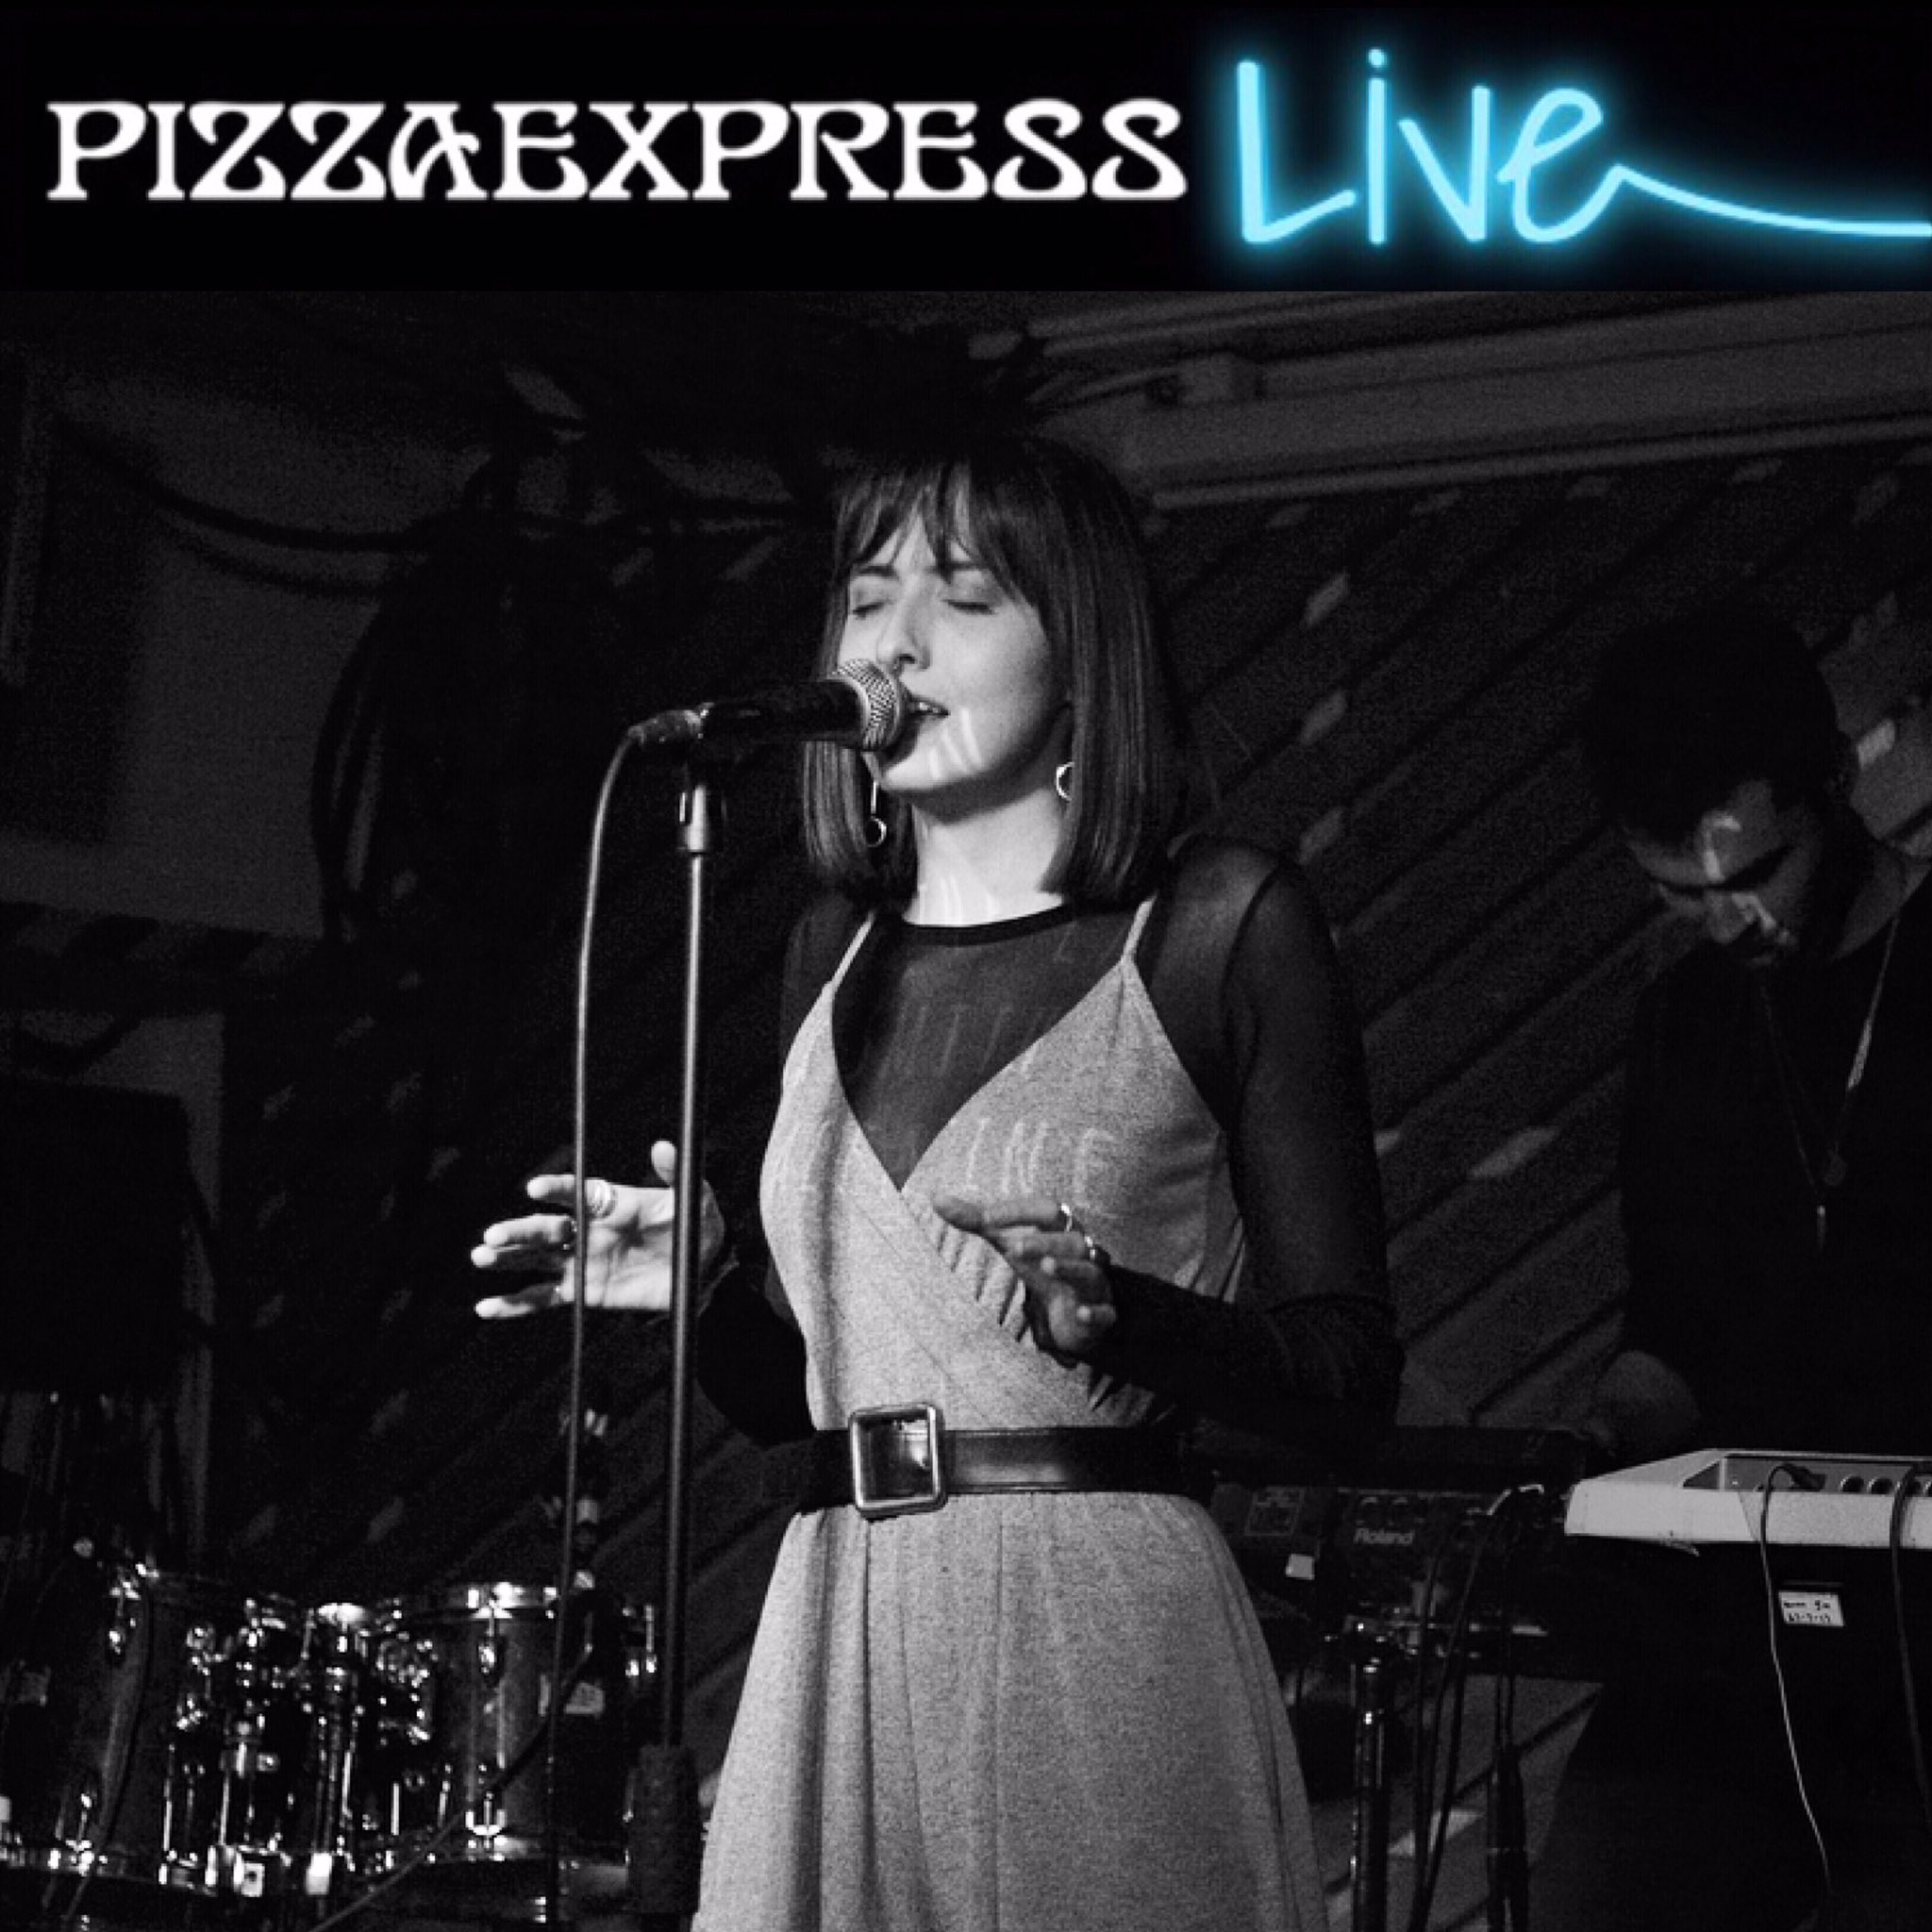 Tilly Valentine On Twitter Playing At Pizzajazzclub Tonight